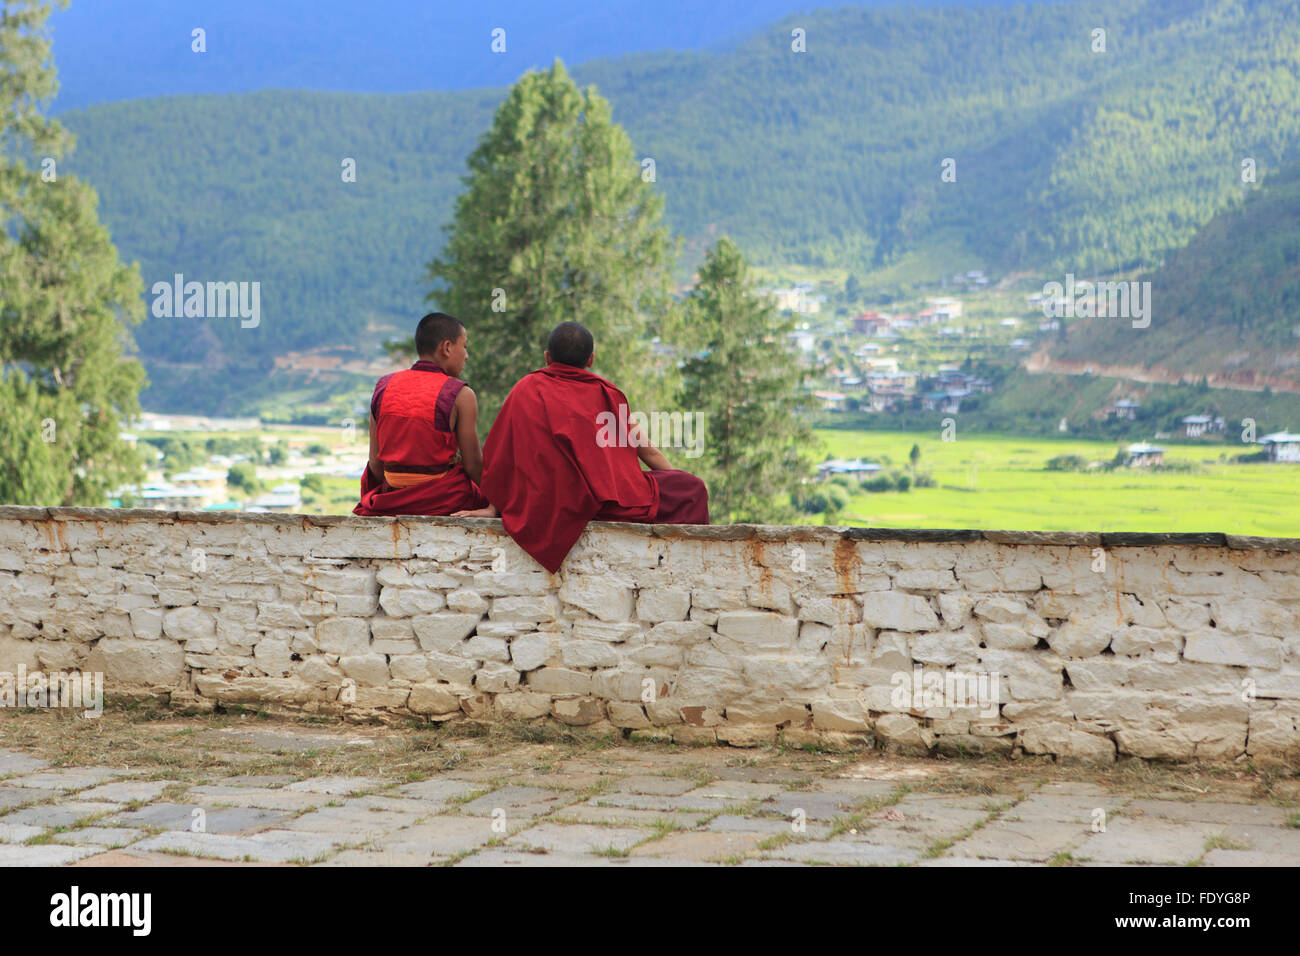 Two monks sit on a wall in Thimphu, Bhutan Stock Photo